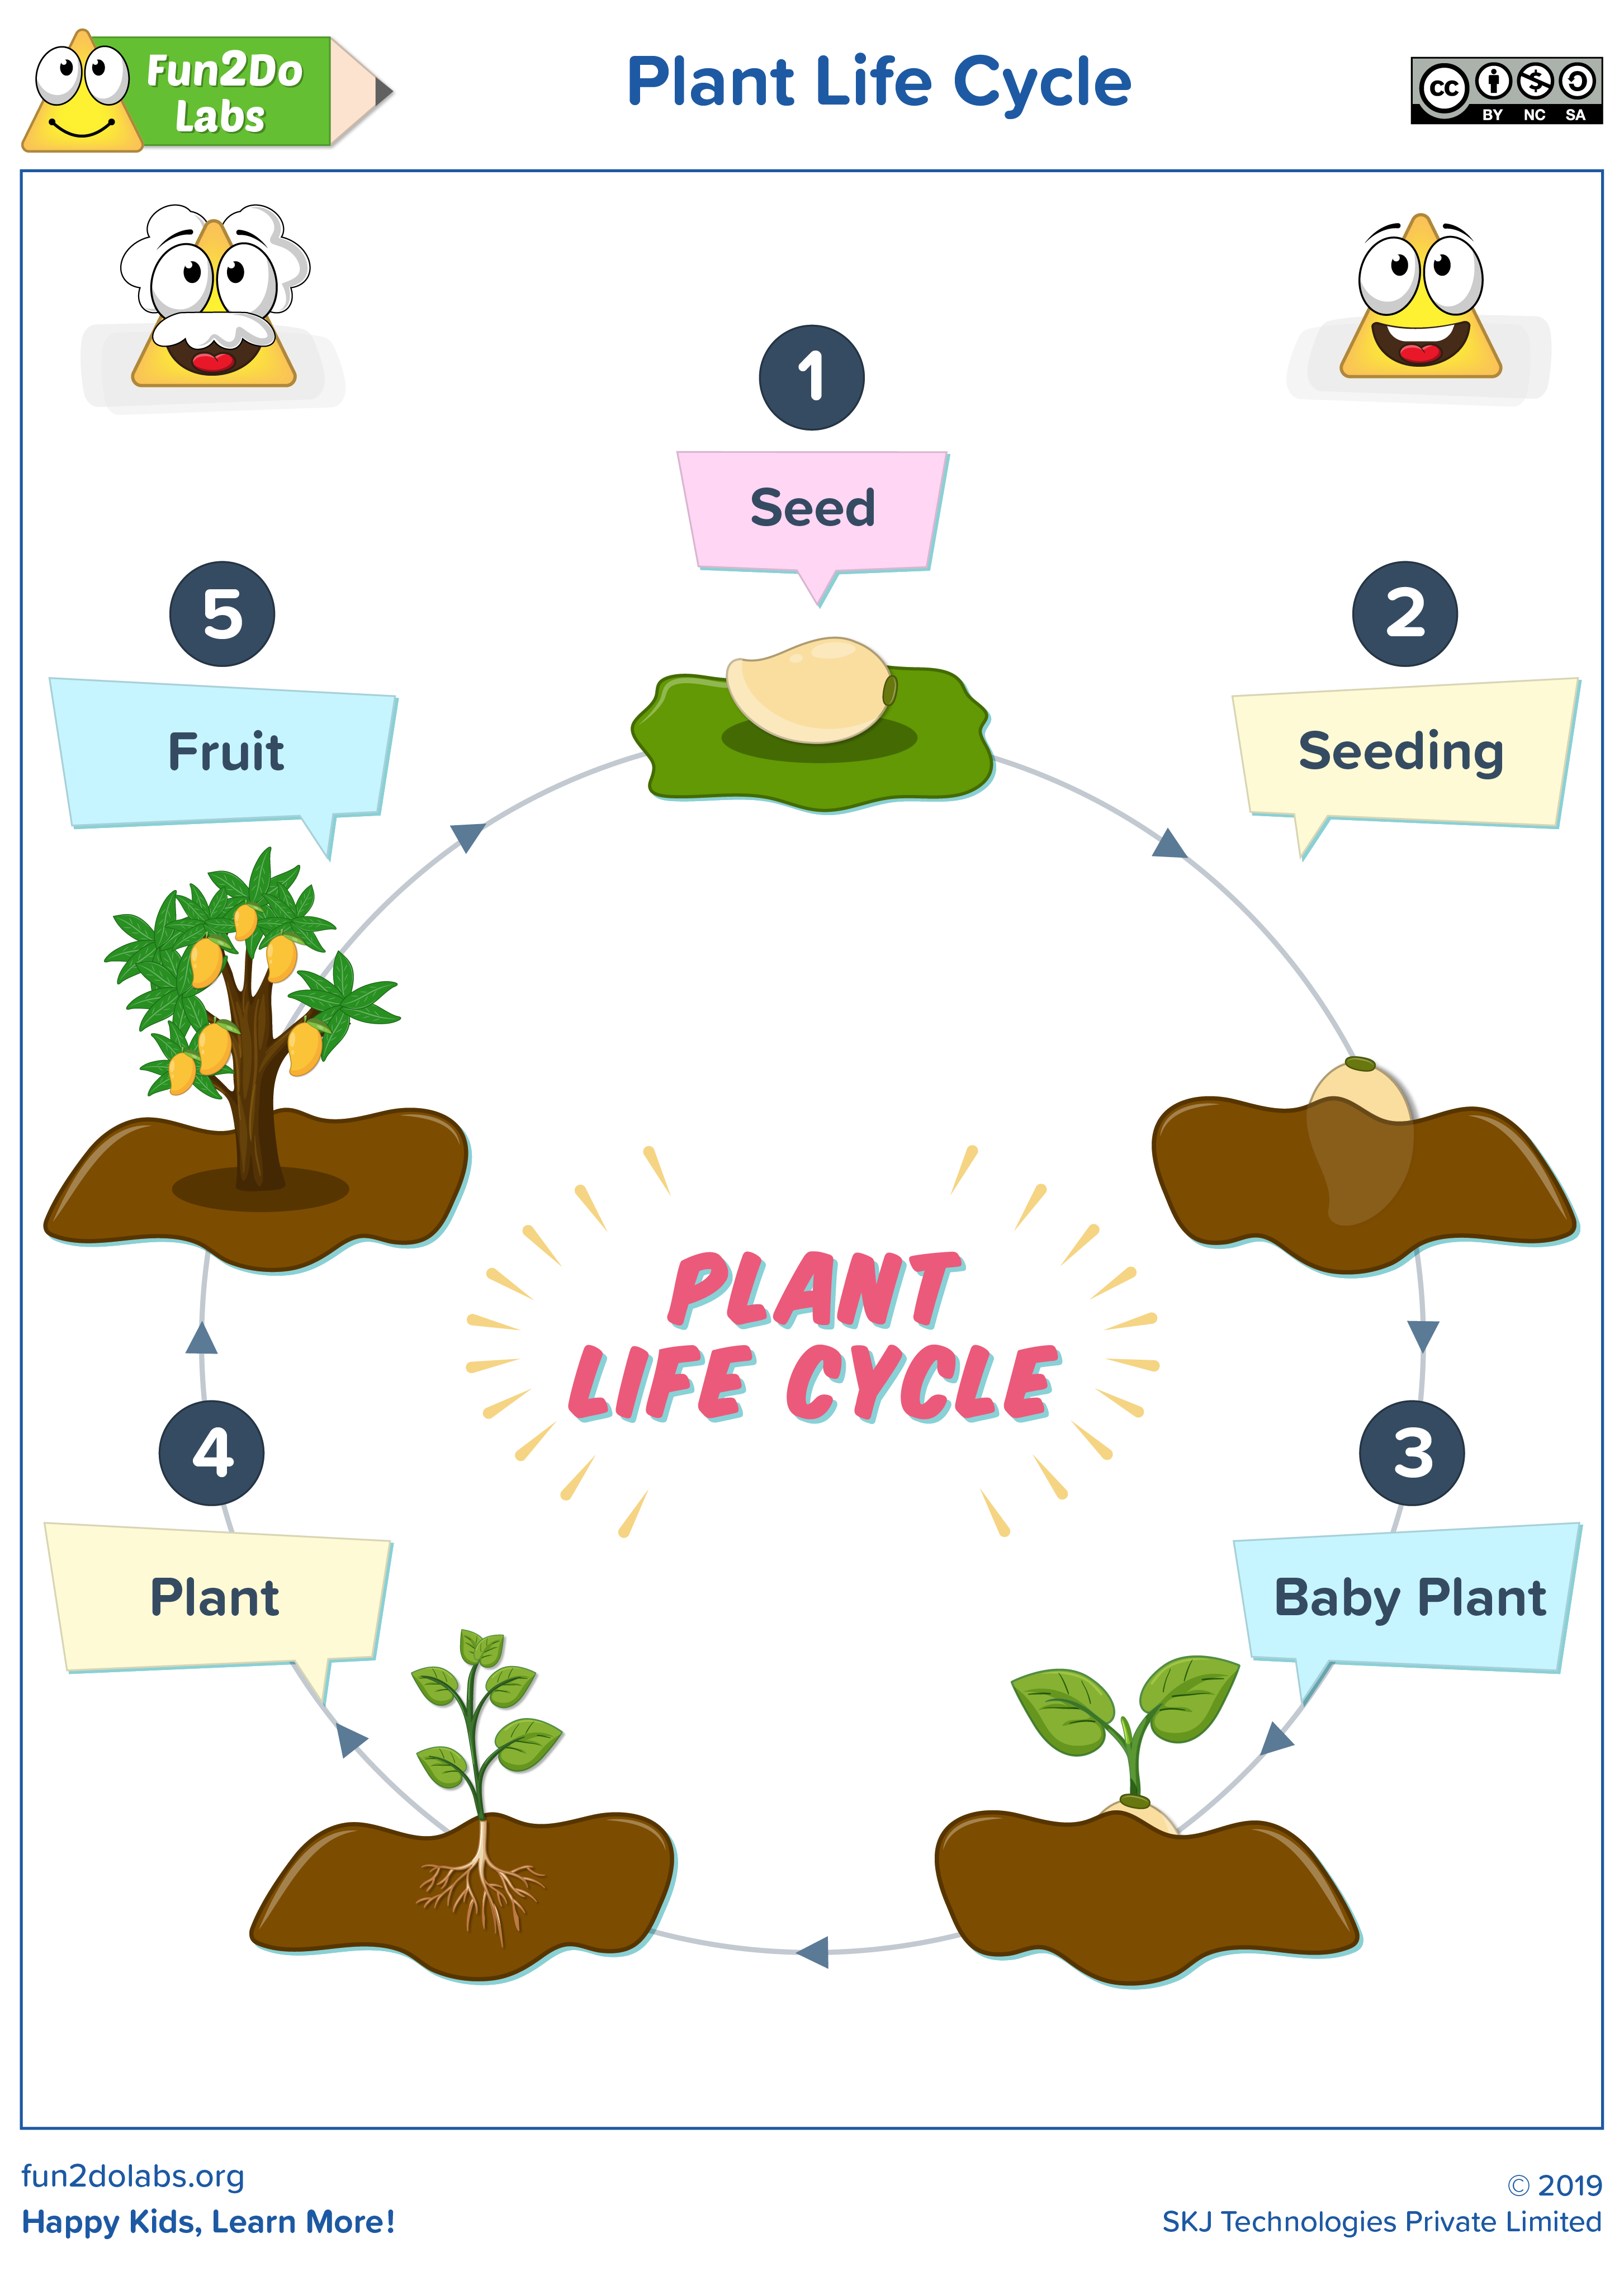 Plant Life Cycle Plant Life Cycle Cycle For Kids Flashcards For Kids [ 4062 x 2905 Pixel ]